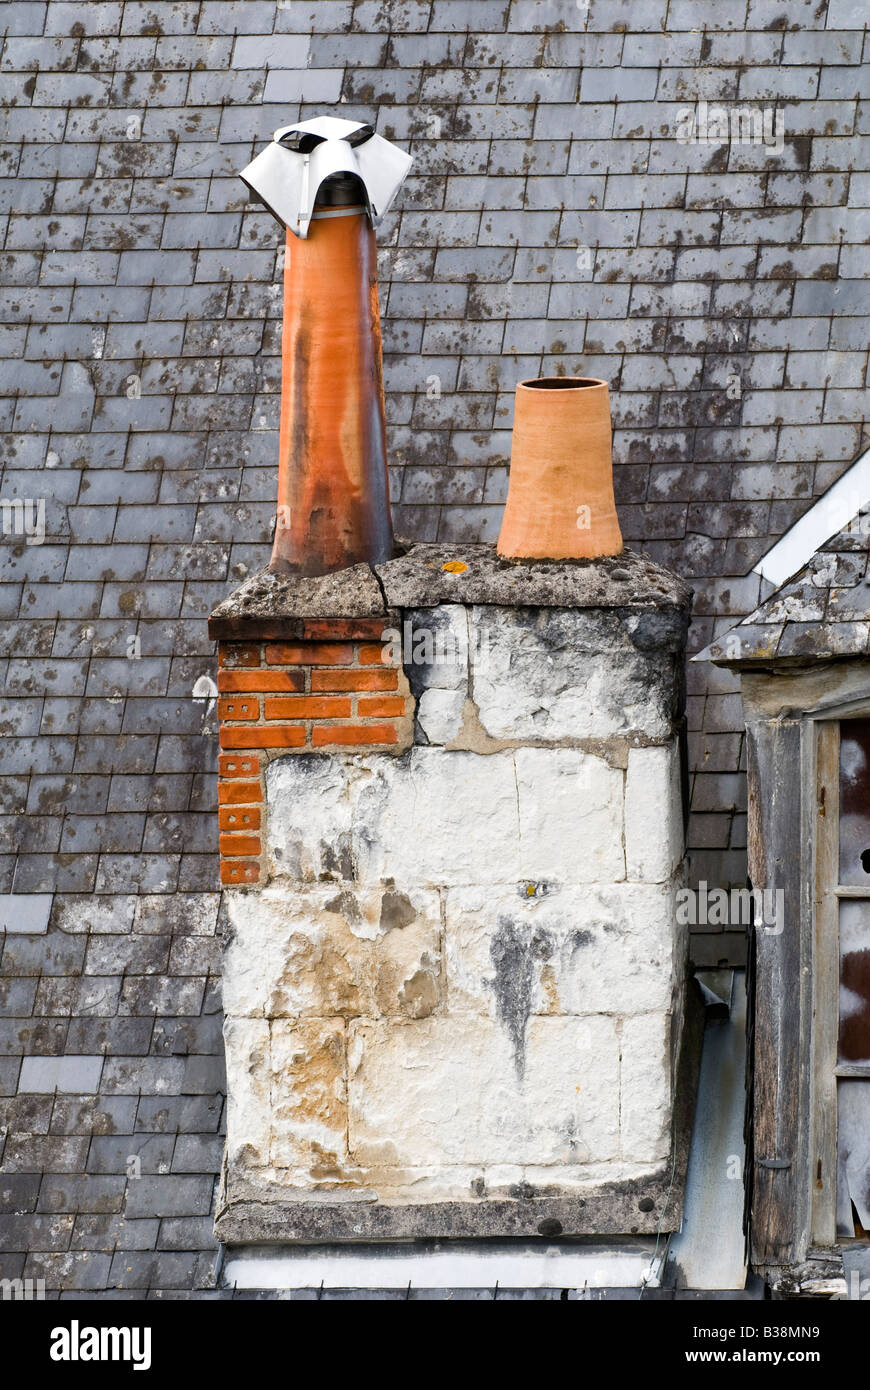 Old chimney stack - Loches, France. - Stock Image